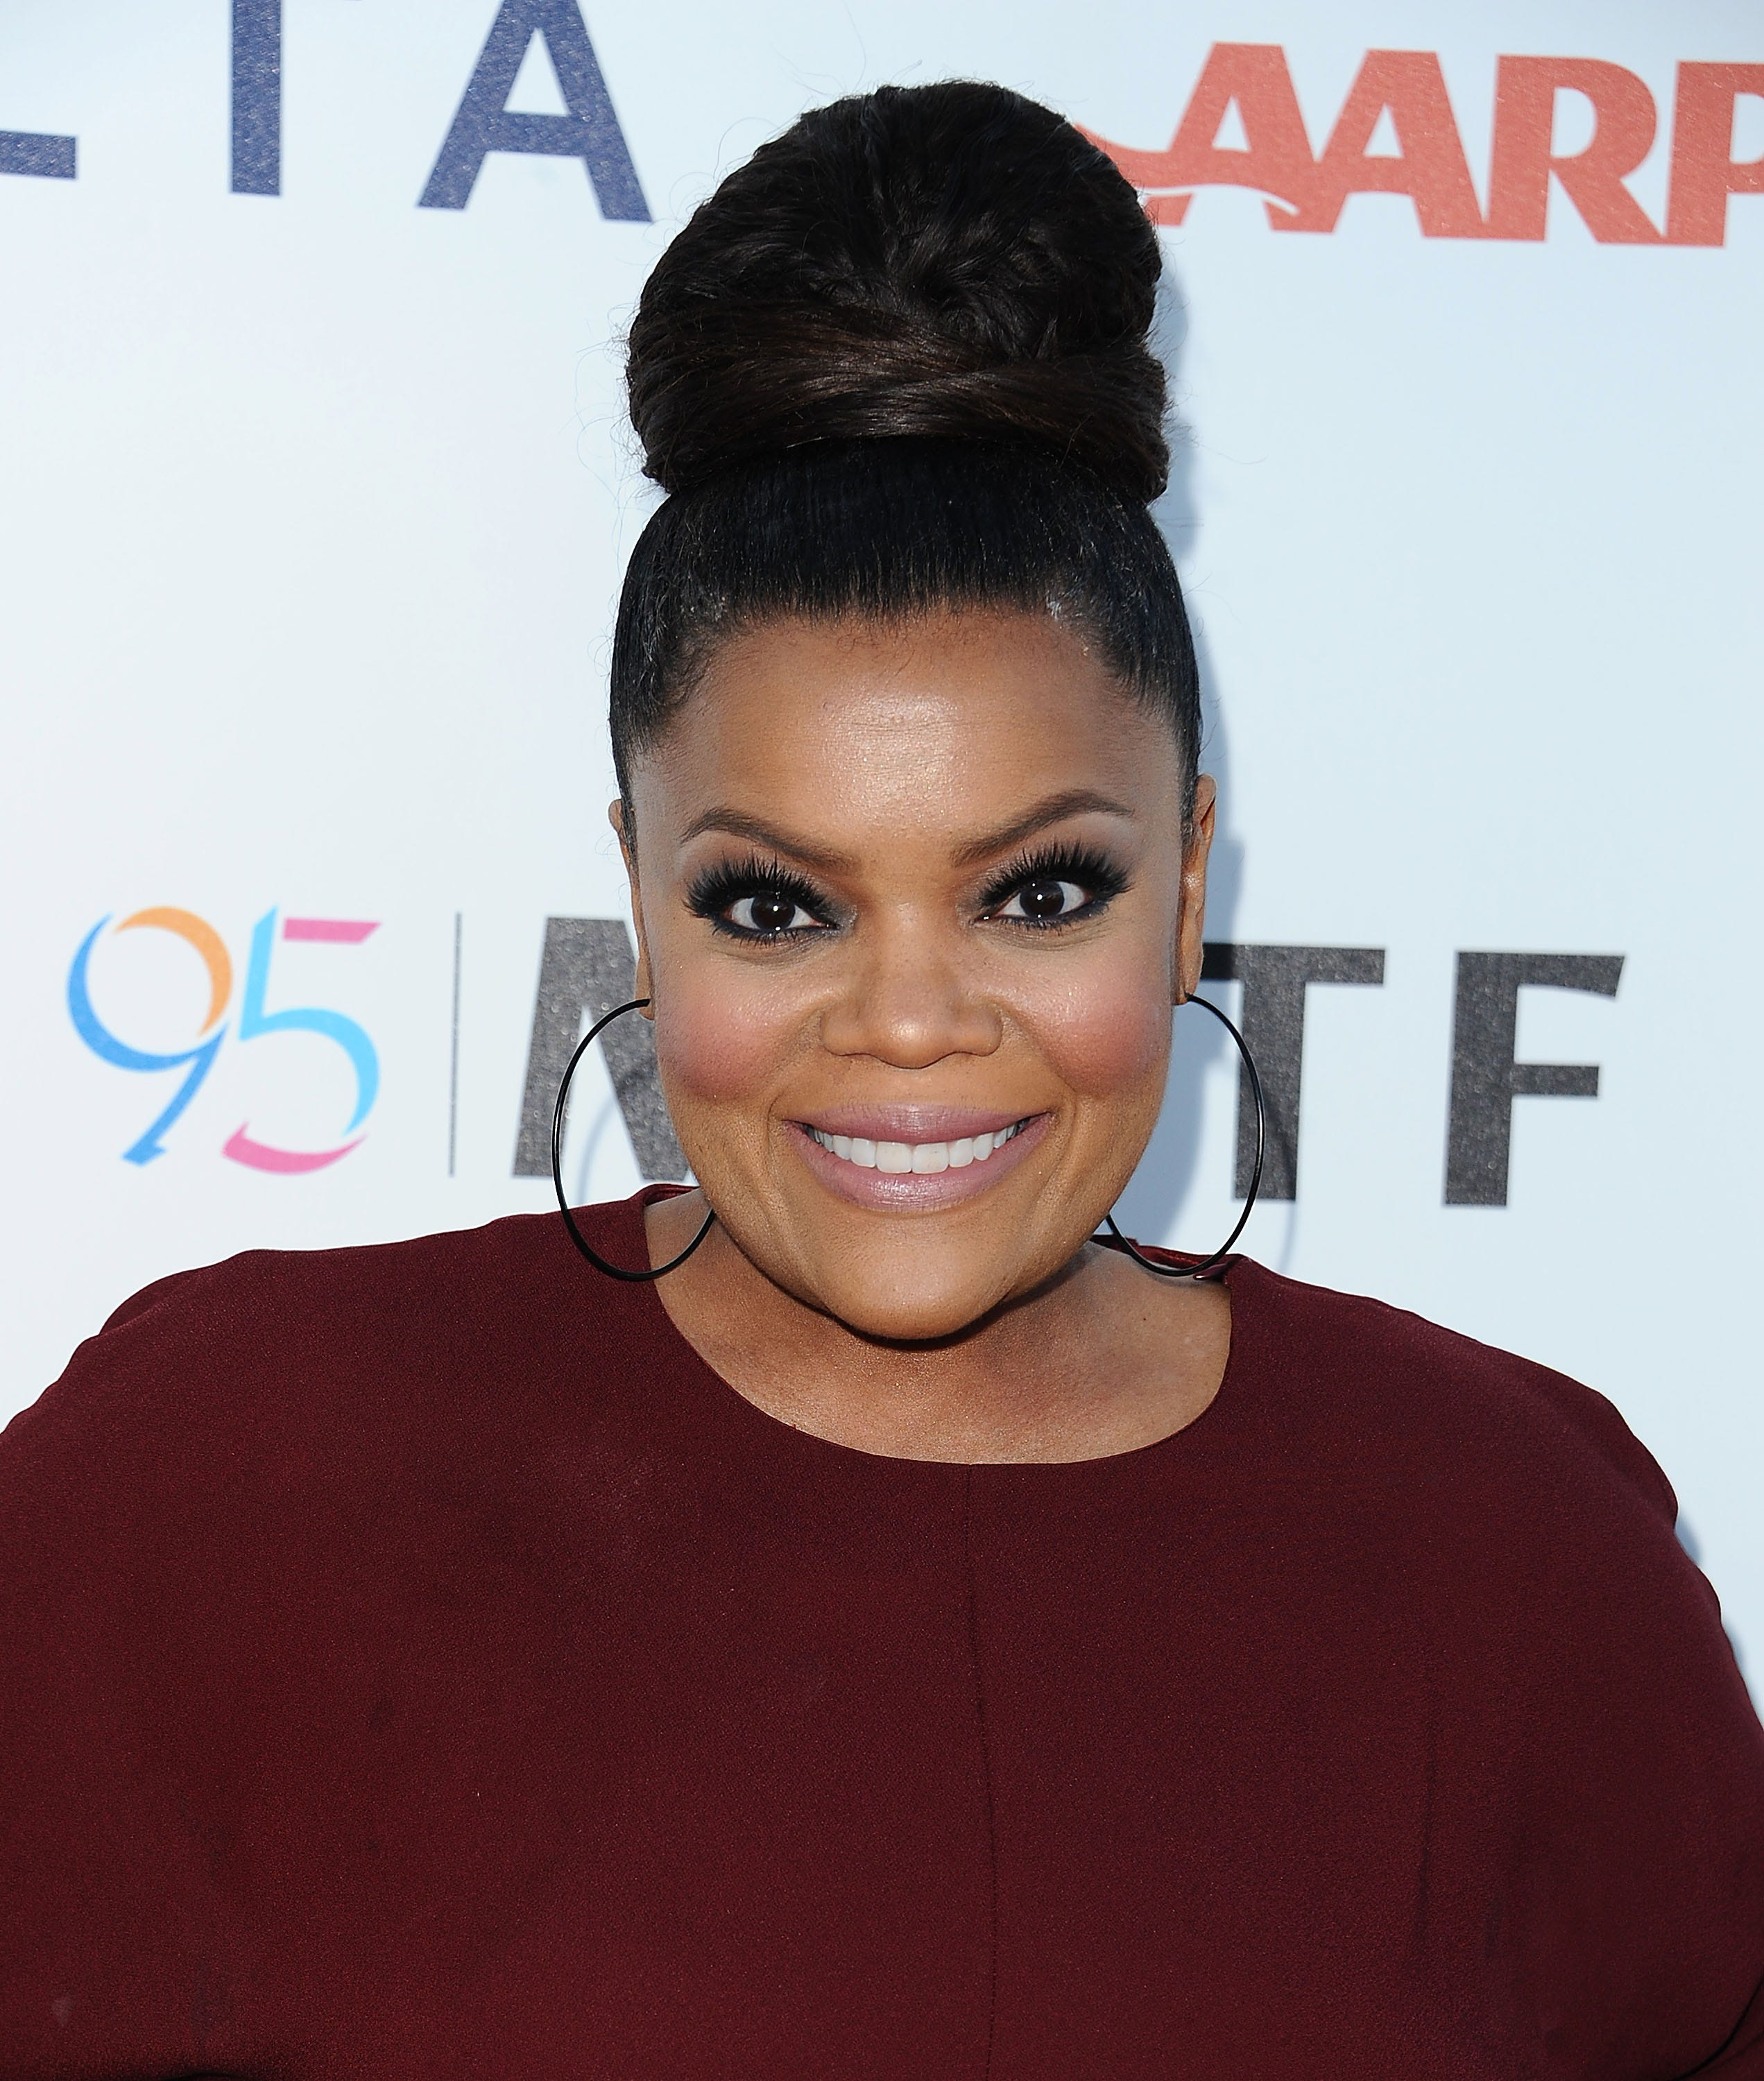 AMC names Yvette Nicole Brown interim guest host of 'Walking Dead' amid allegation review